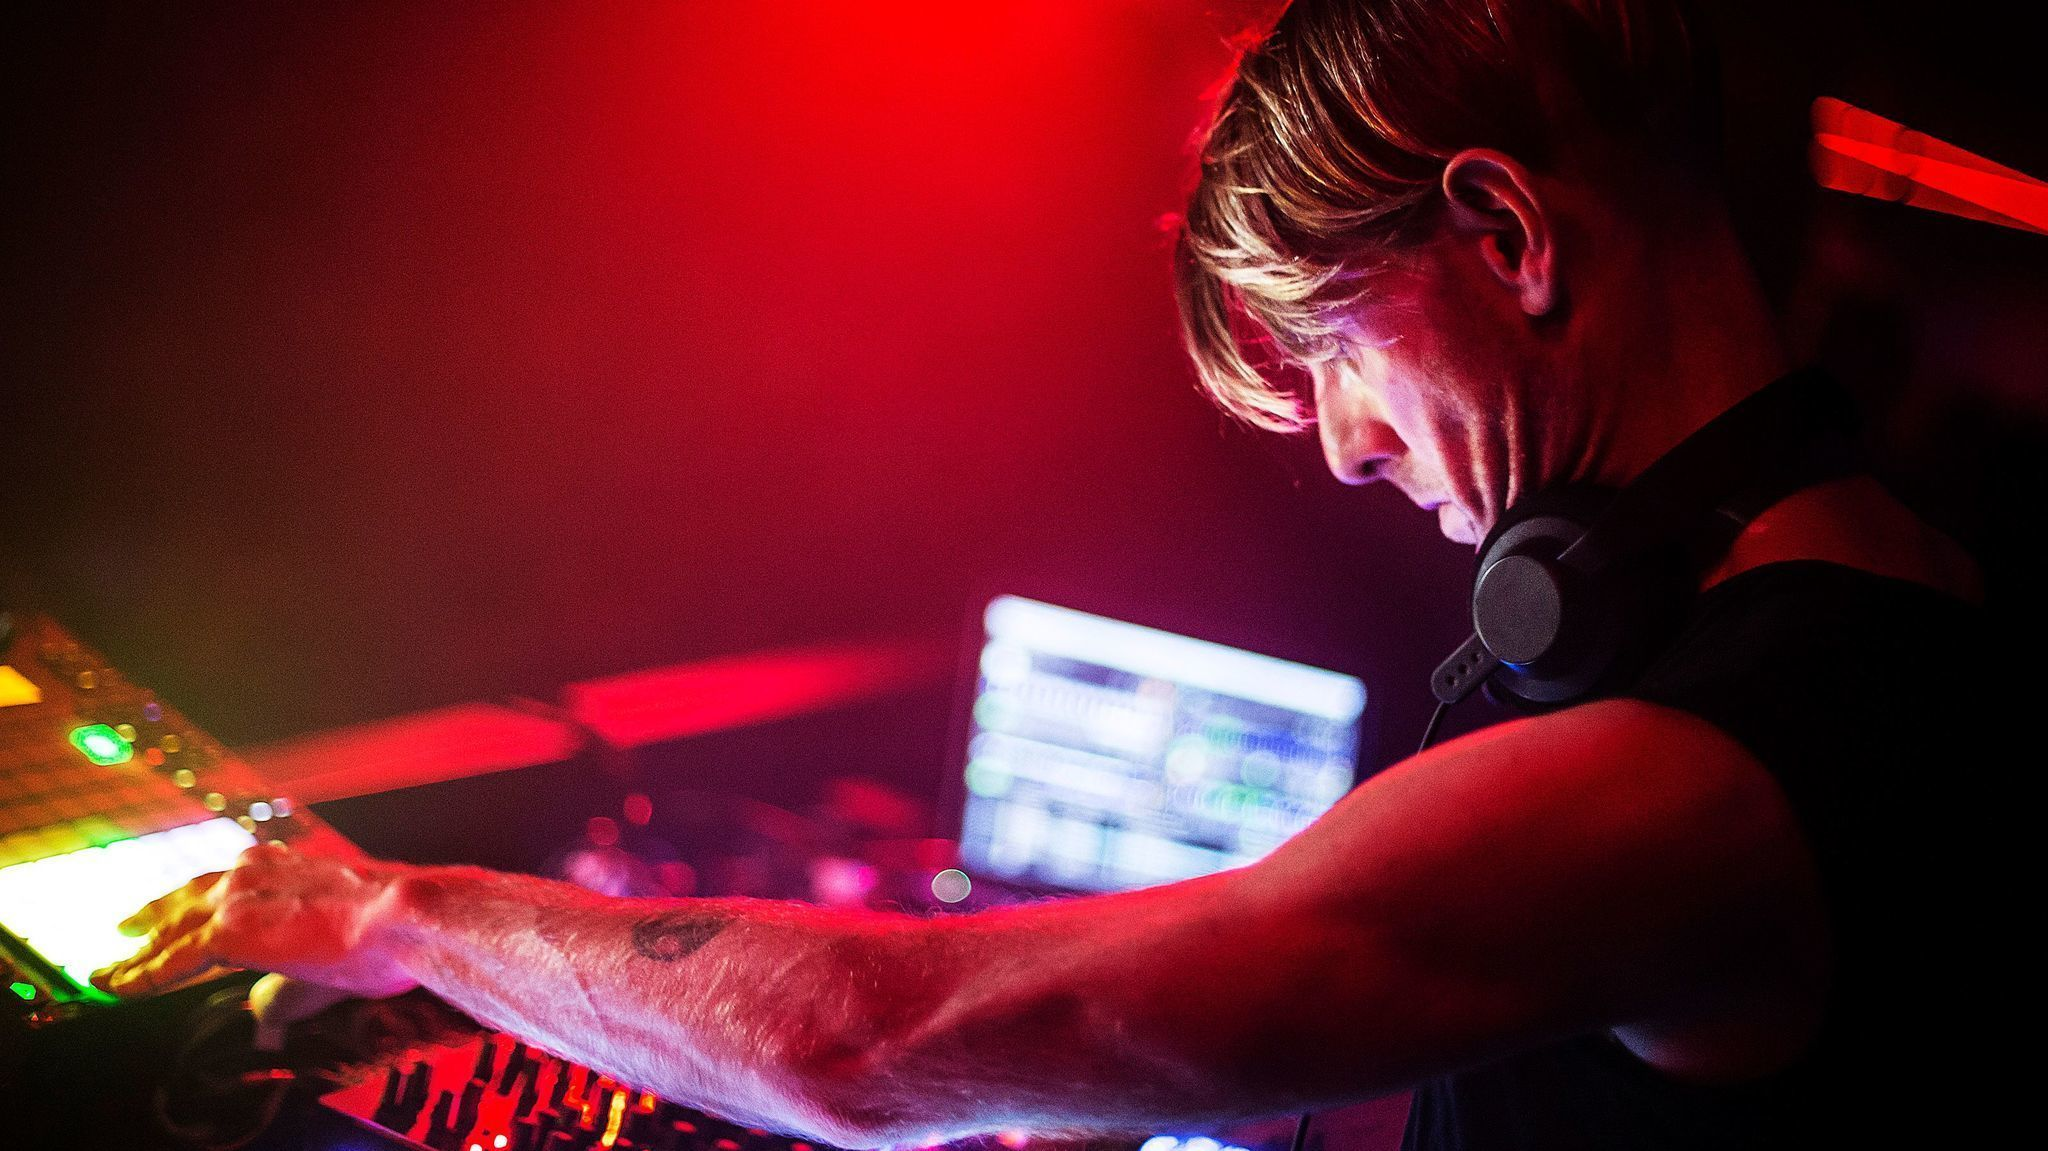 With his new show 'Close,' Richie Hawtin will DJ without his decks at Coachella - Los Angeles Times